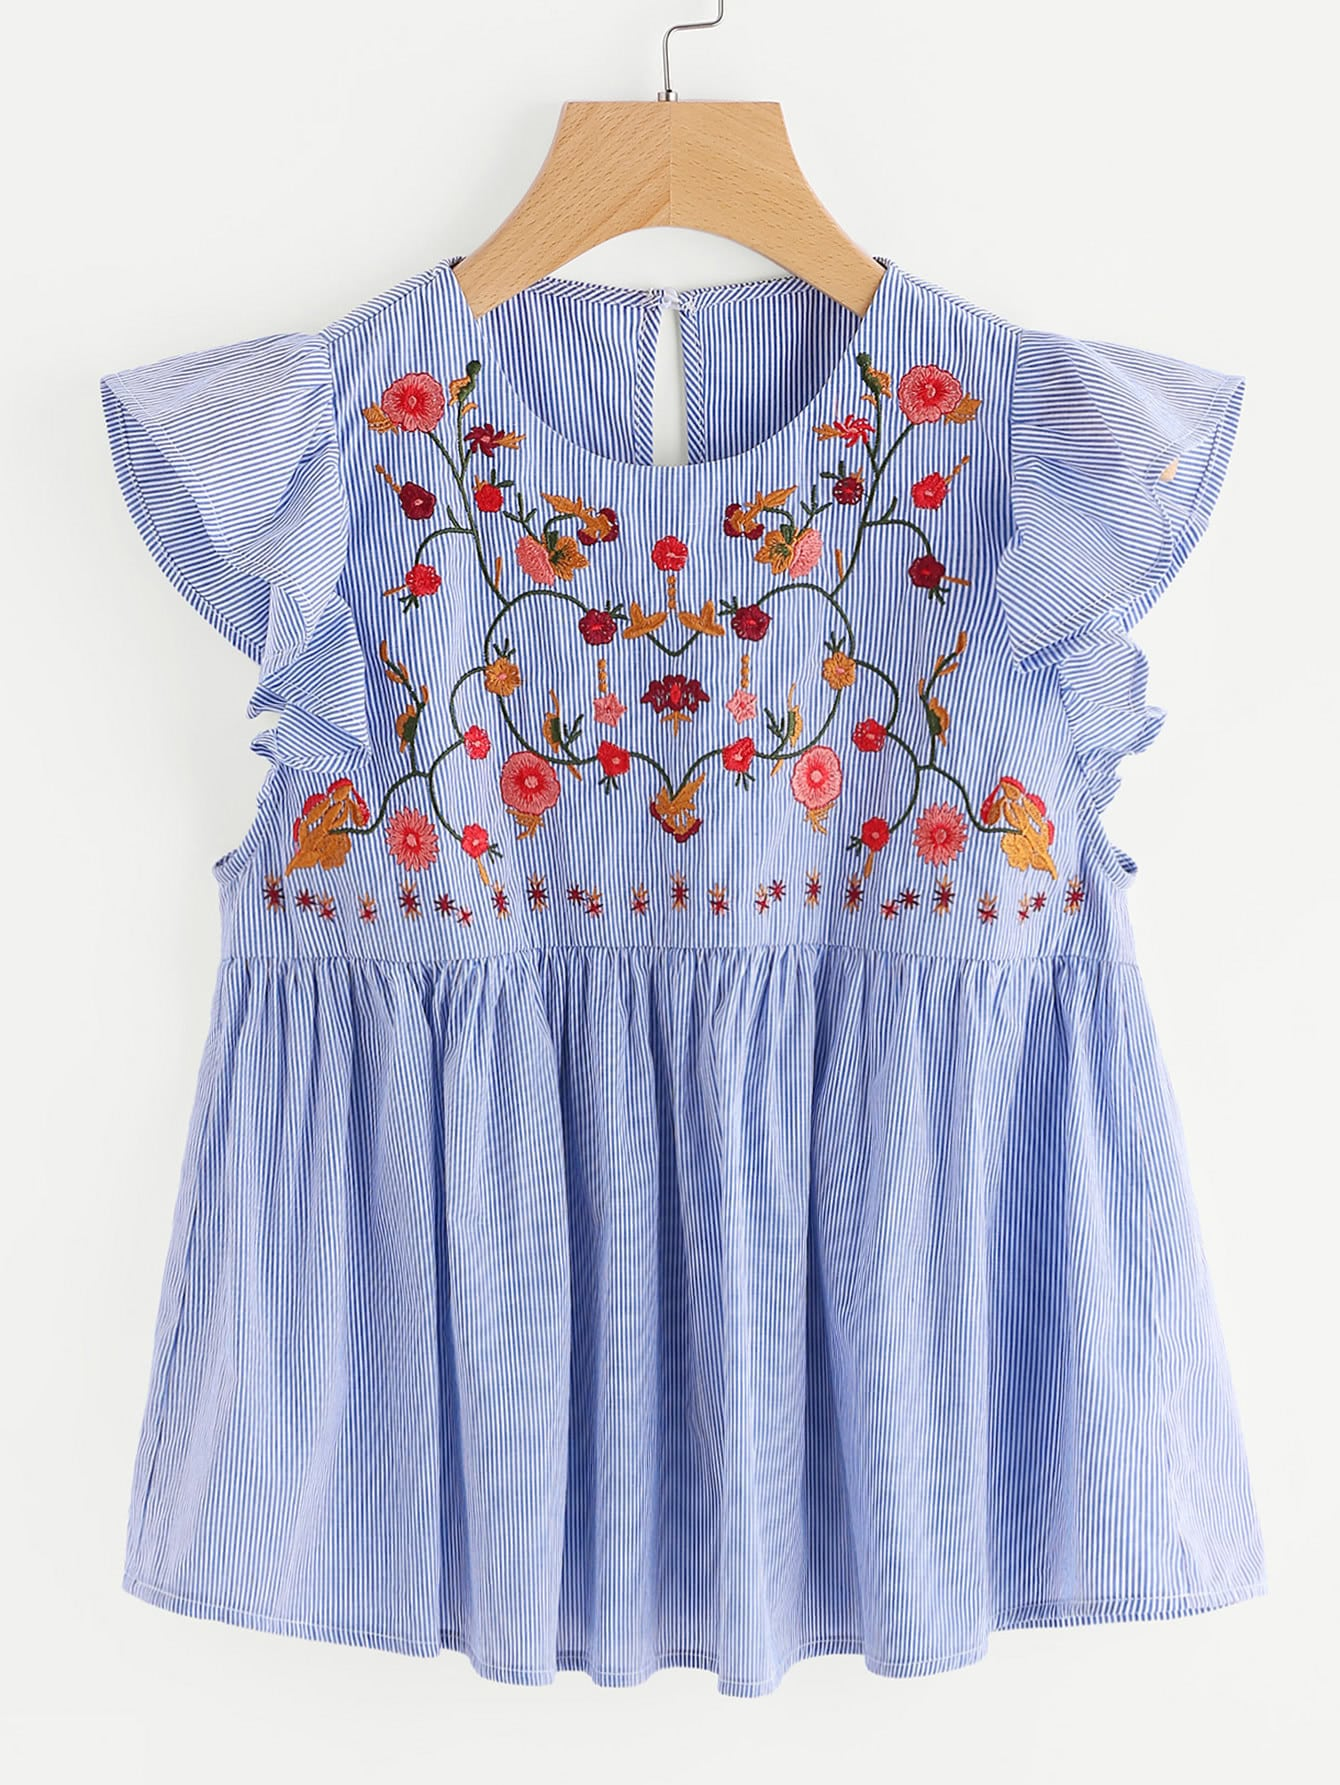 Embroidered Yoke Frill Sleeve Striped Babydoll Top blouse170509706